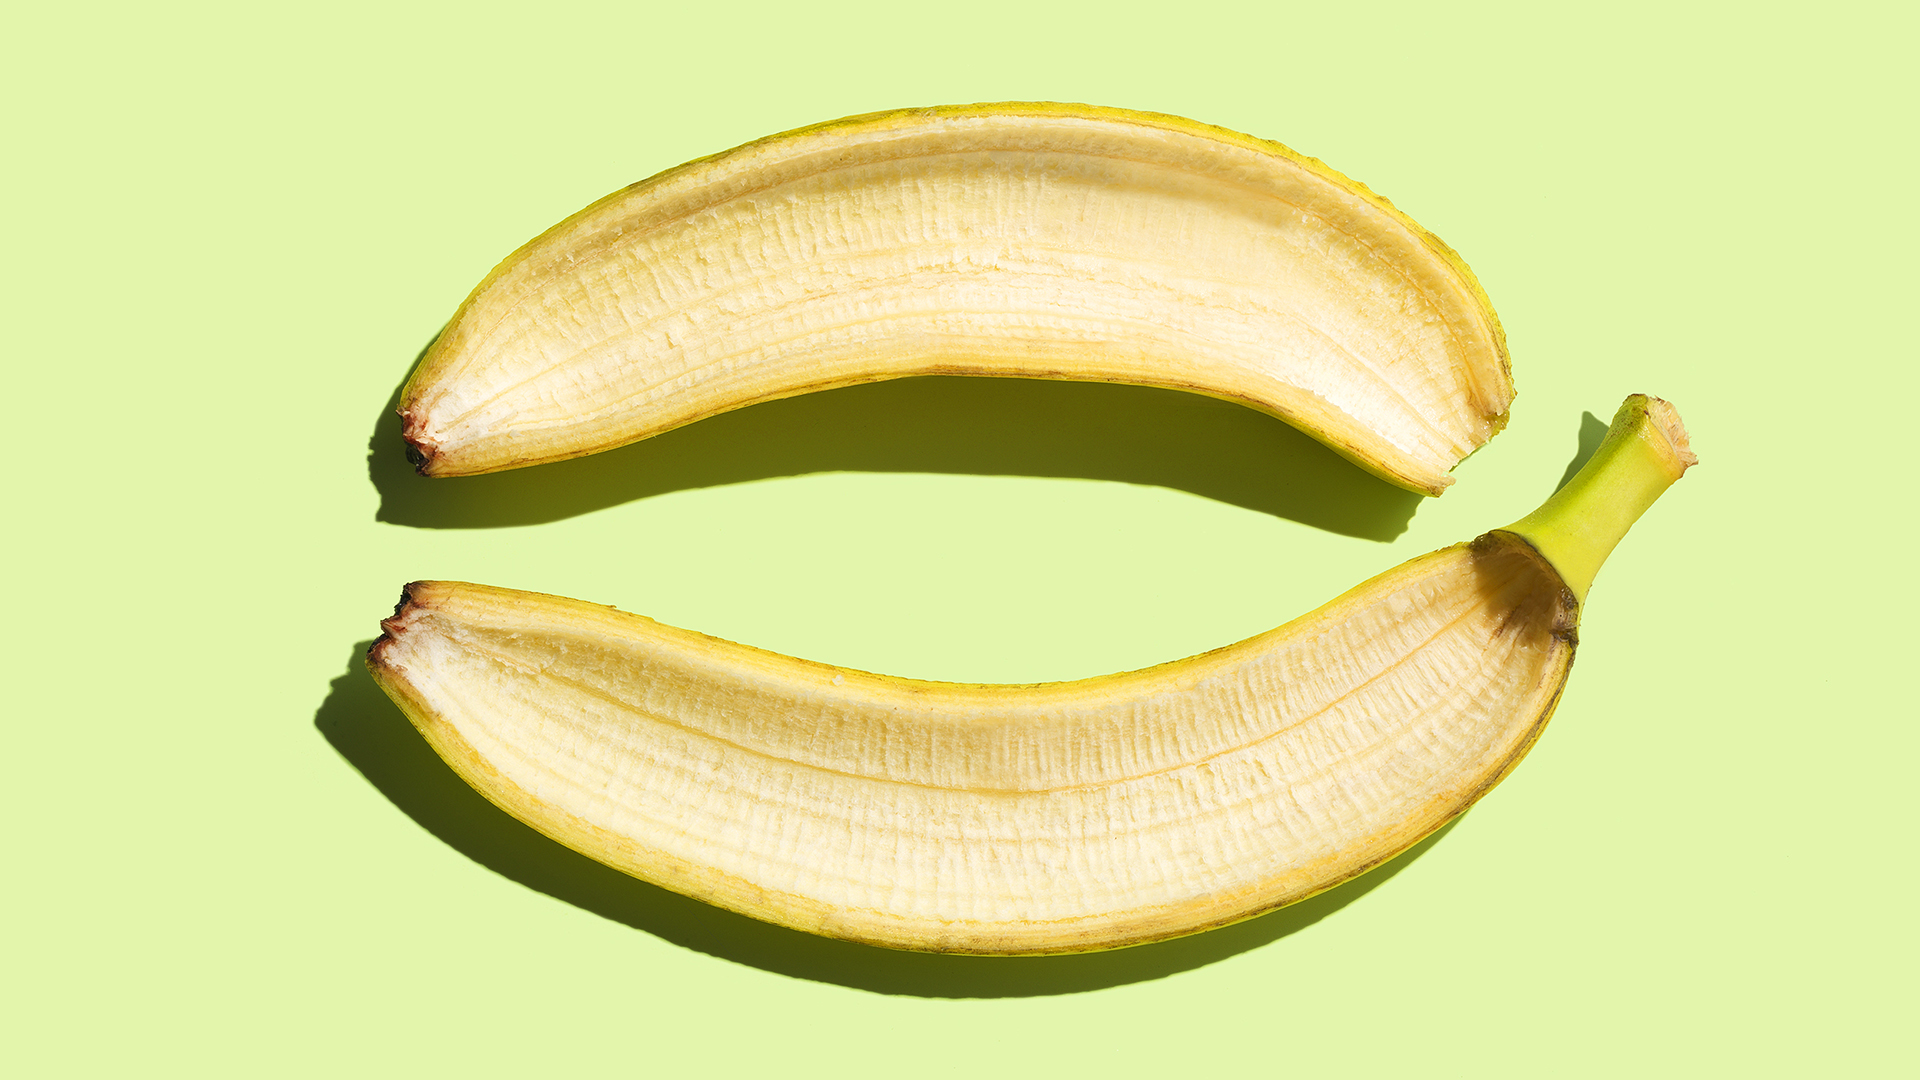 Uses For Banana Peels Polish Shoes Whiten Teeth And More